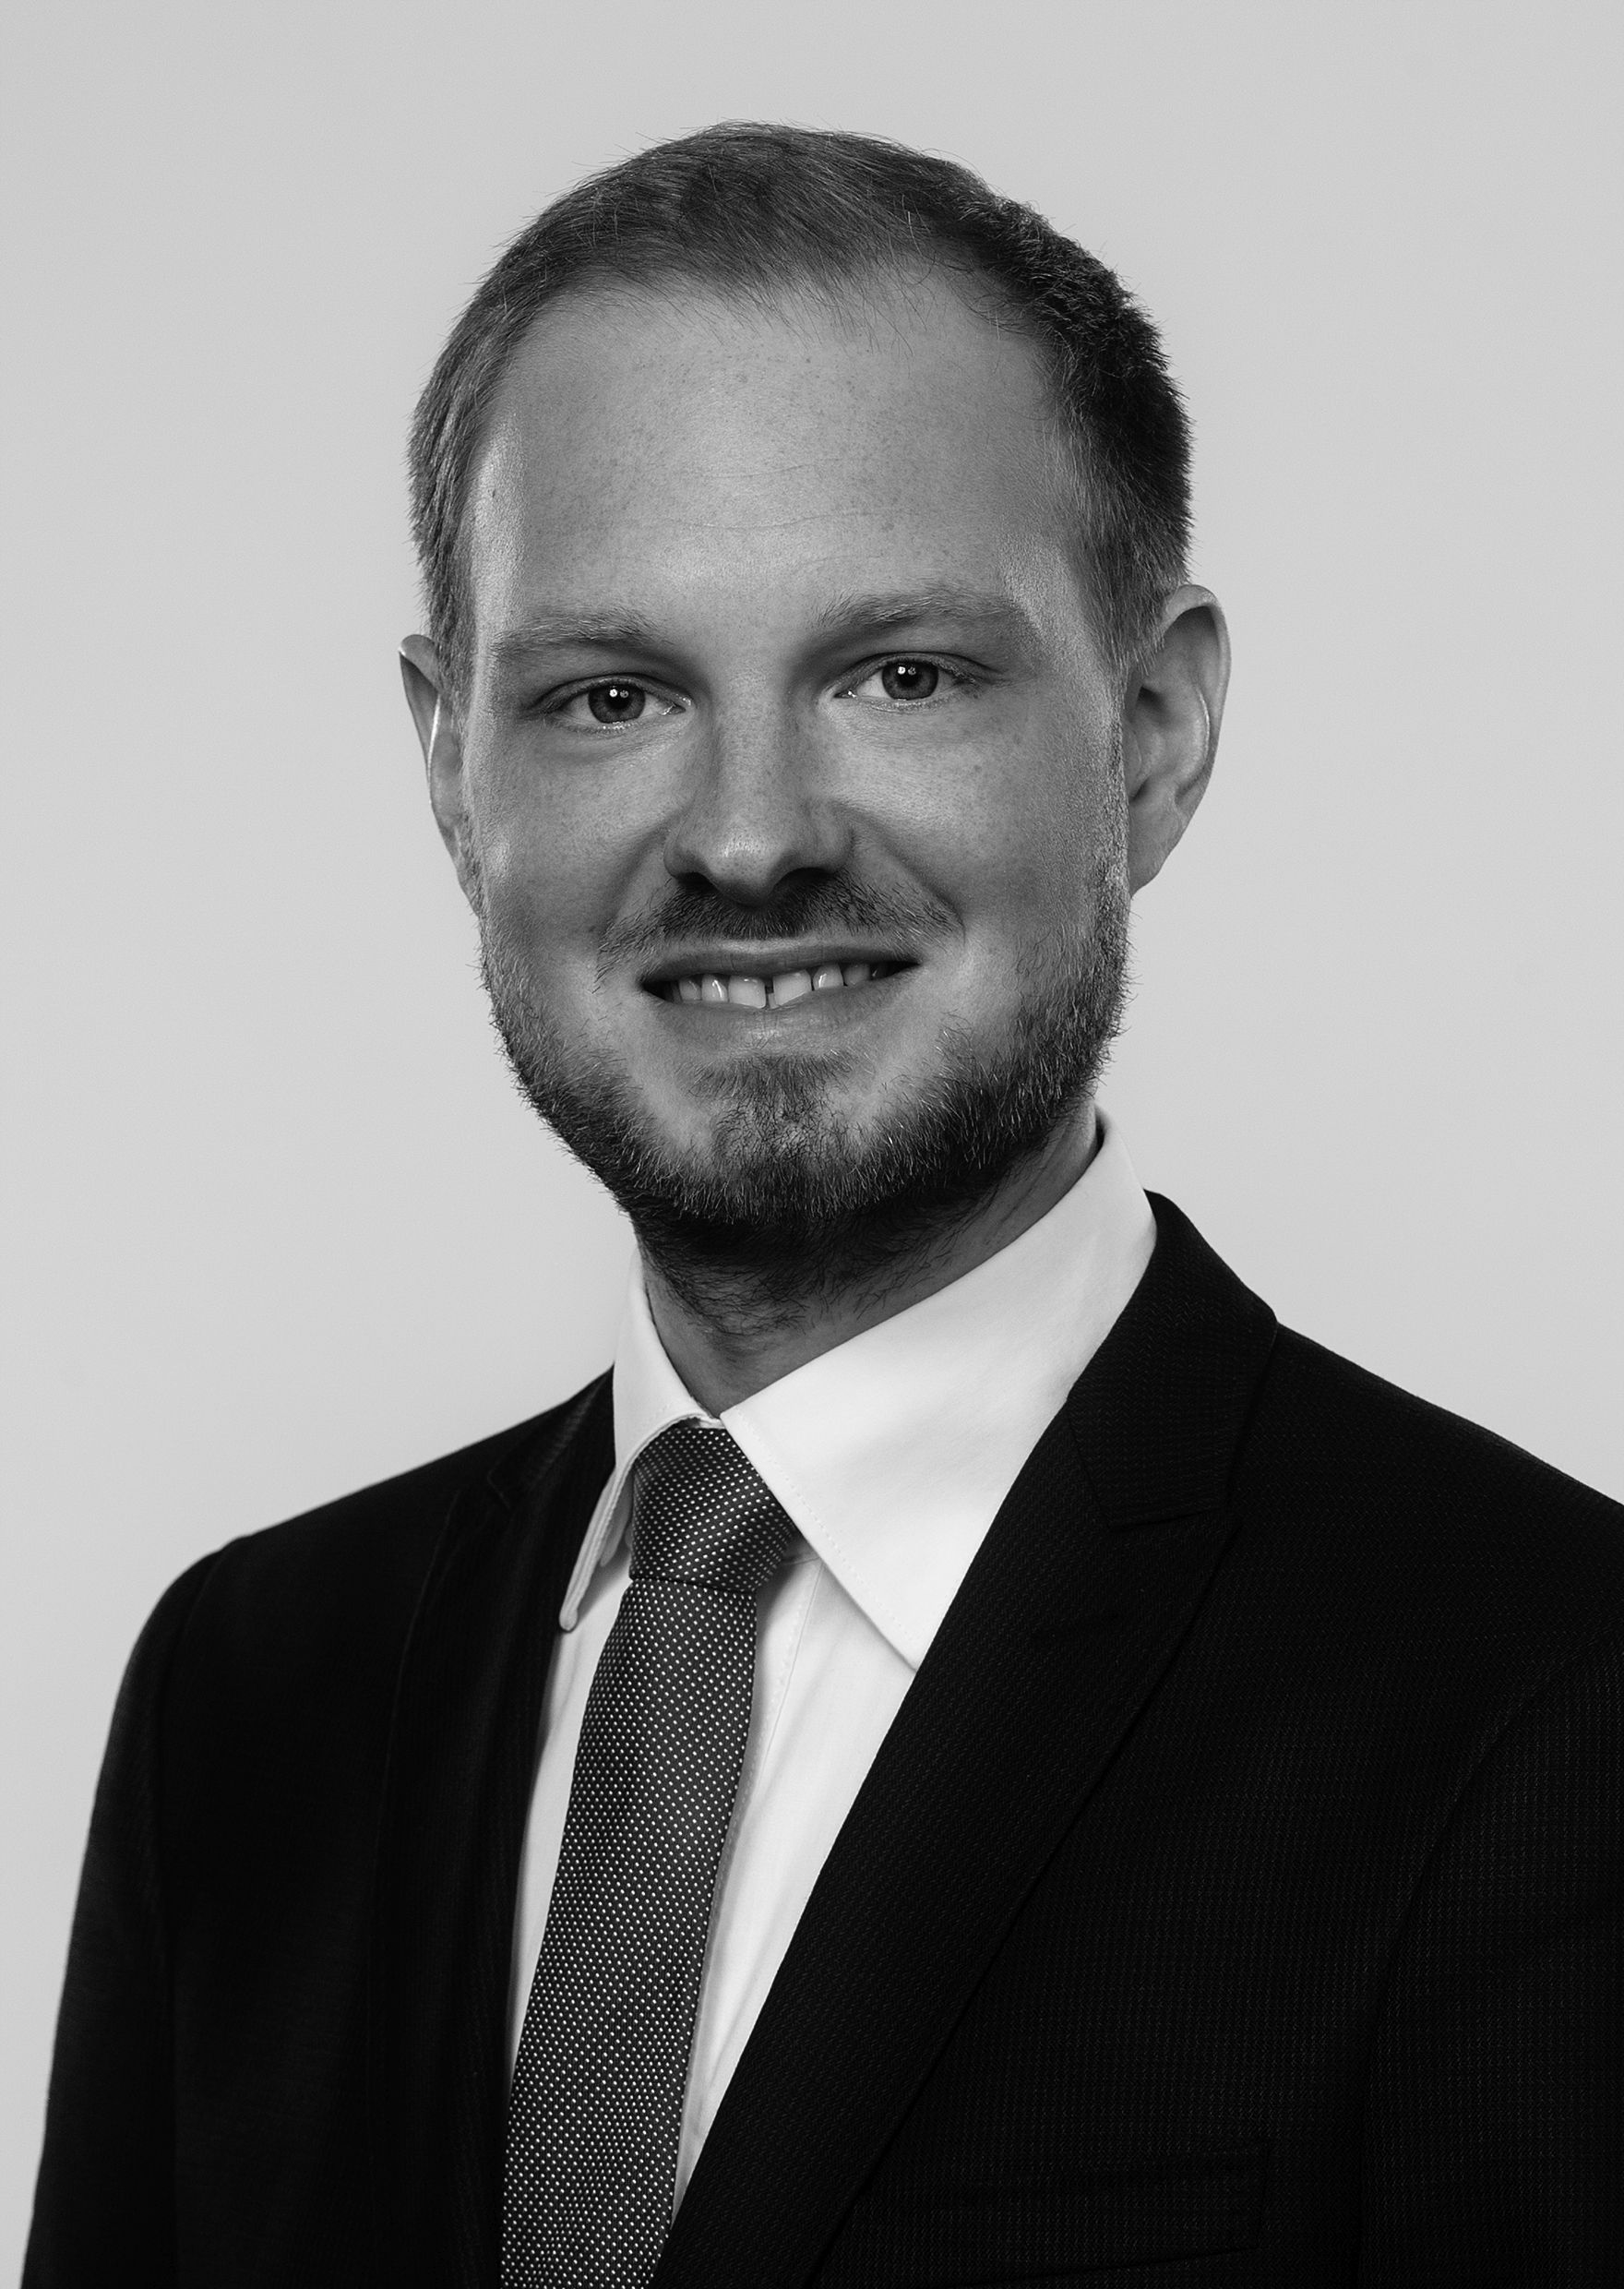 Tobias Meyer, Competence Center Controlling & Finance Senior Project Manager, Horváth & Partner GmbH